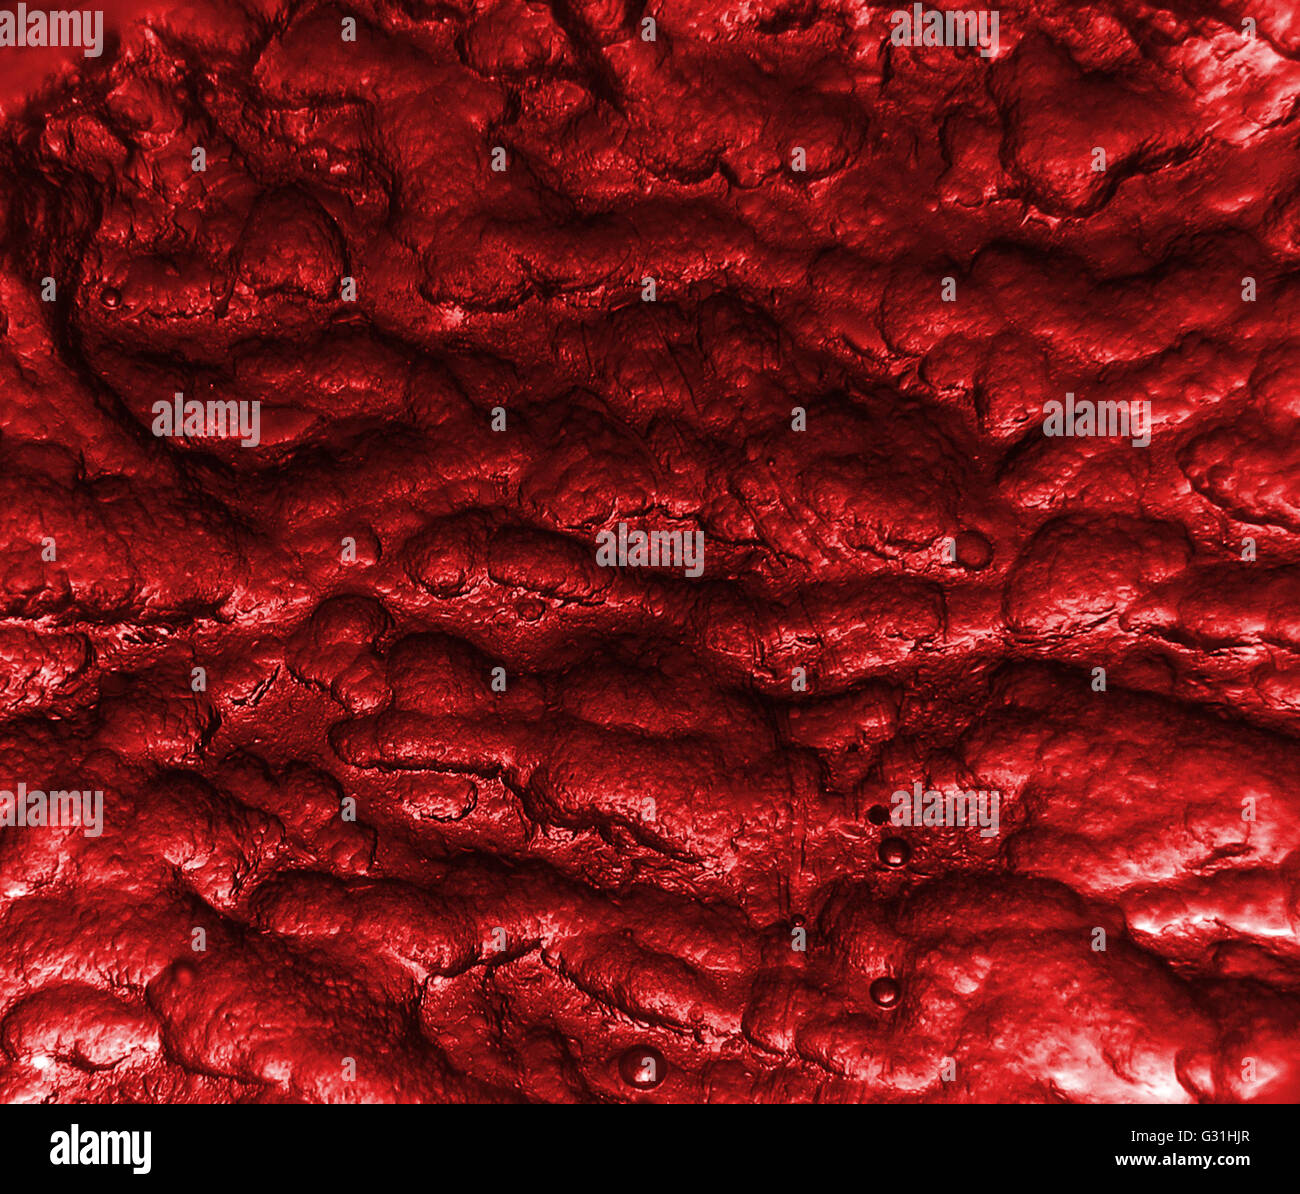 A background red texture with a weird texture and design with small bubbles. - Stock Image